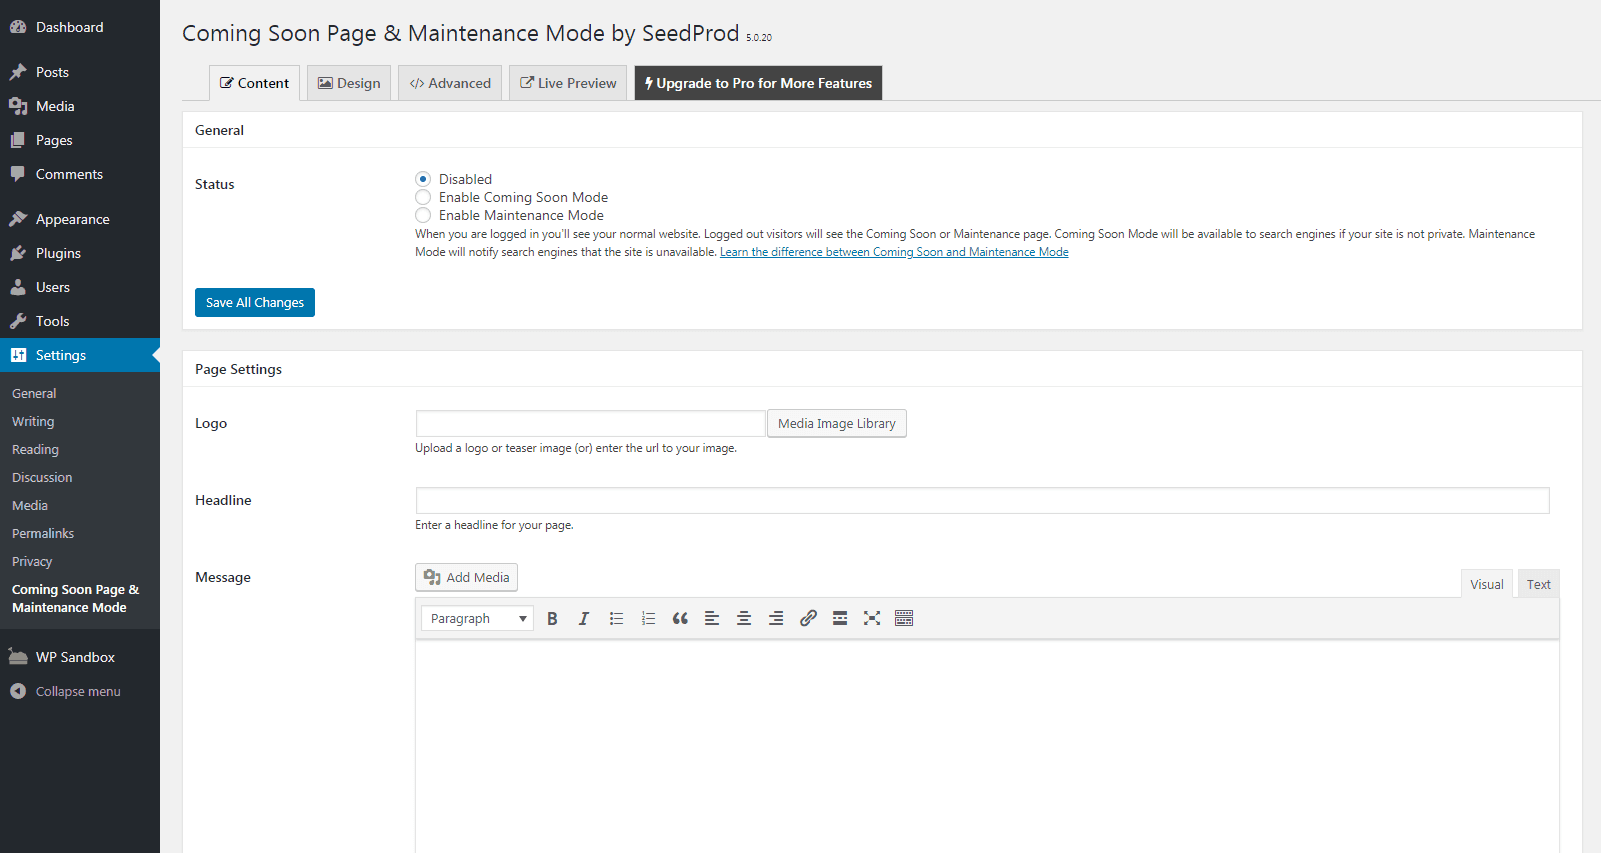 The Coming Soon Page & Maintenance Mode plugin settings.